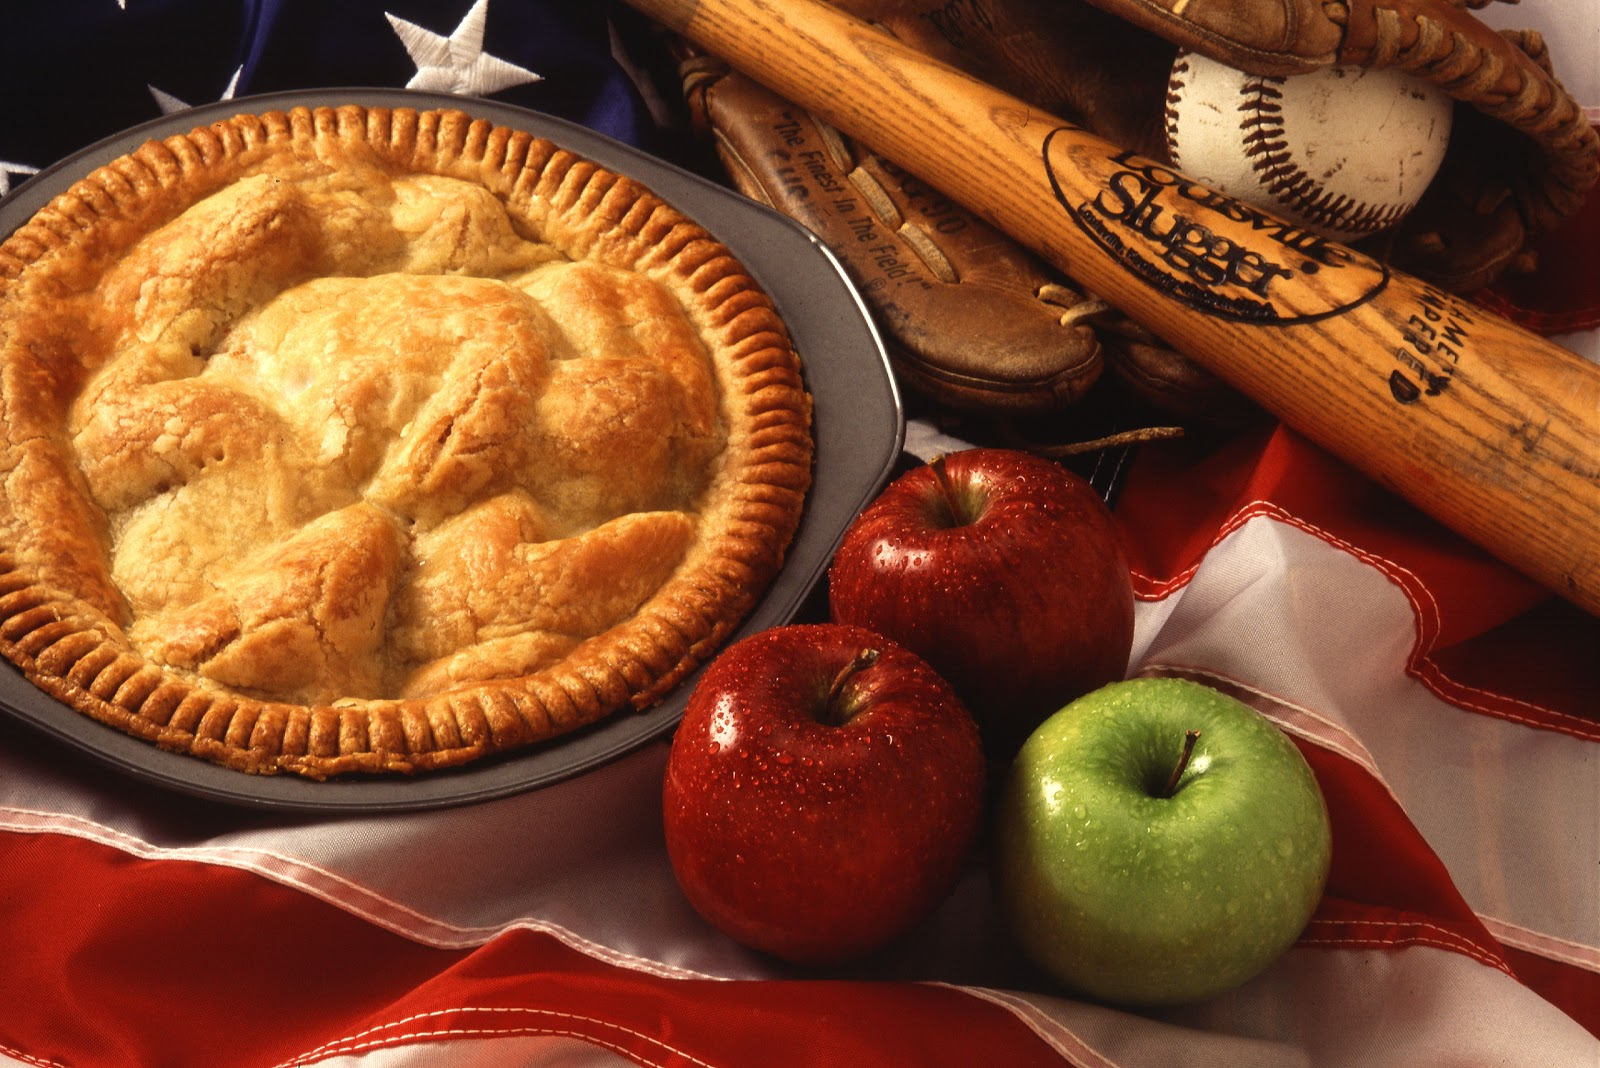 Cooking guide 101 regional cuisine as american as apple pie for American cuisine dishes